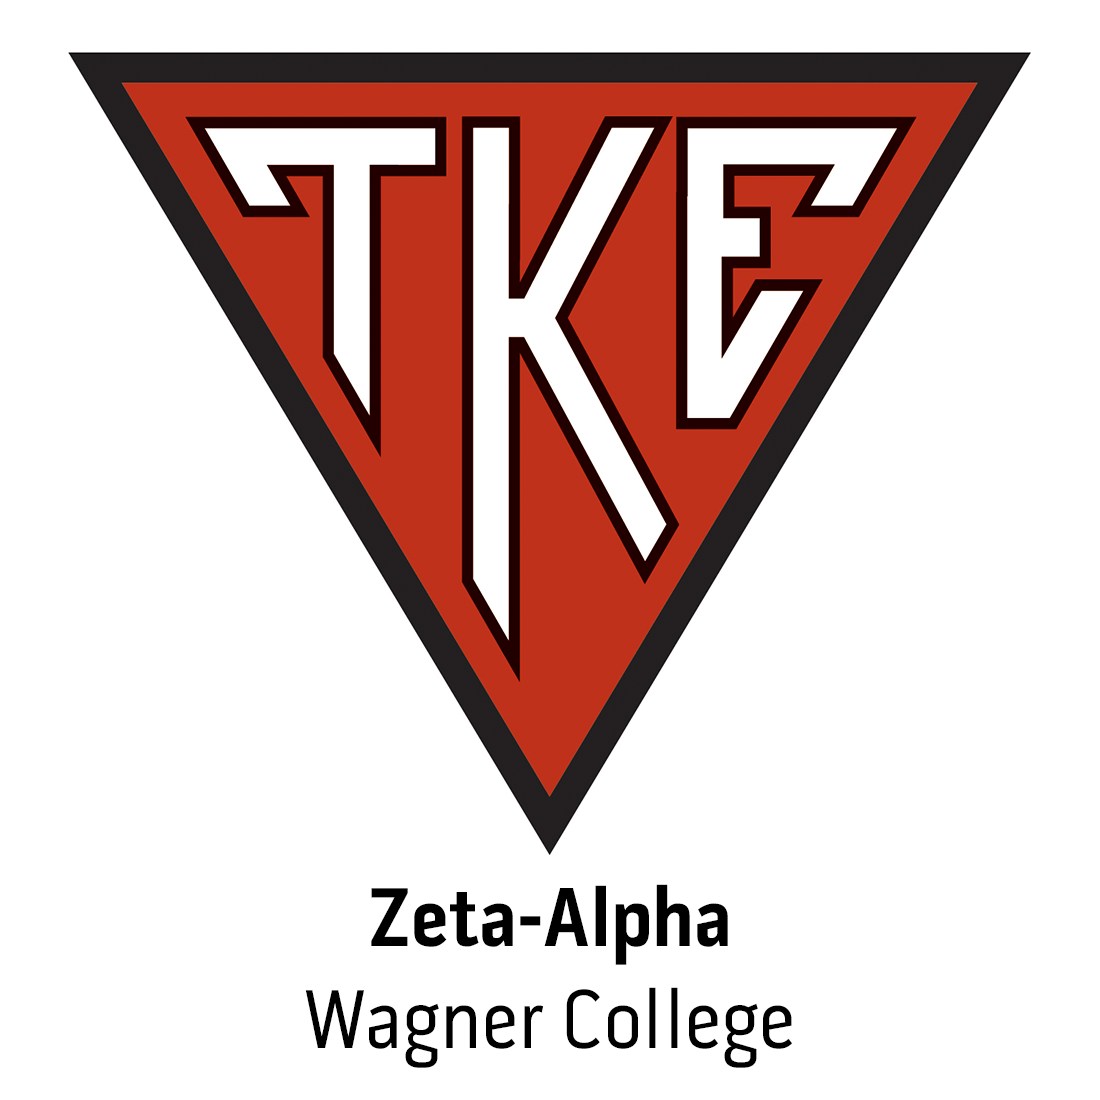 Zeta-Alpha Chapter at Wagner College